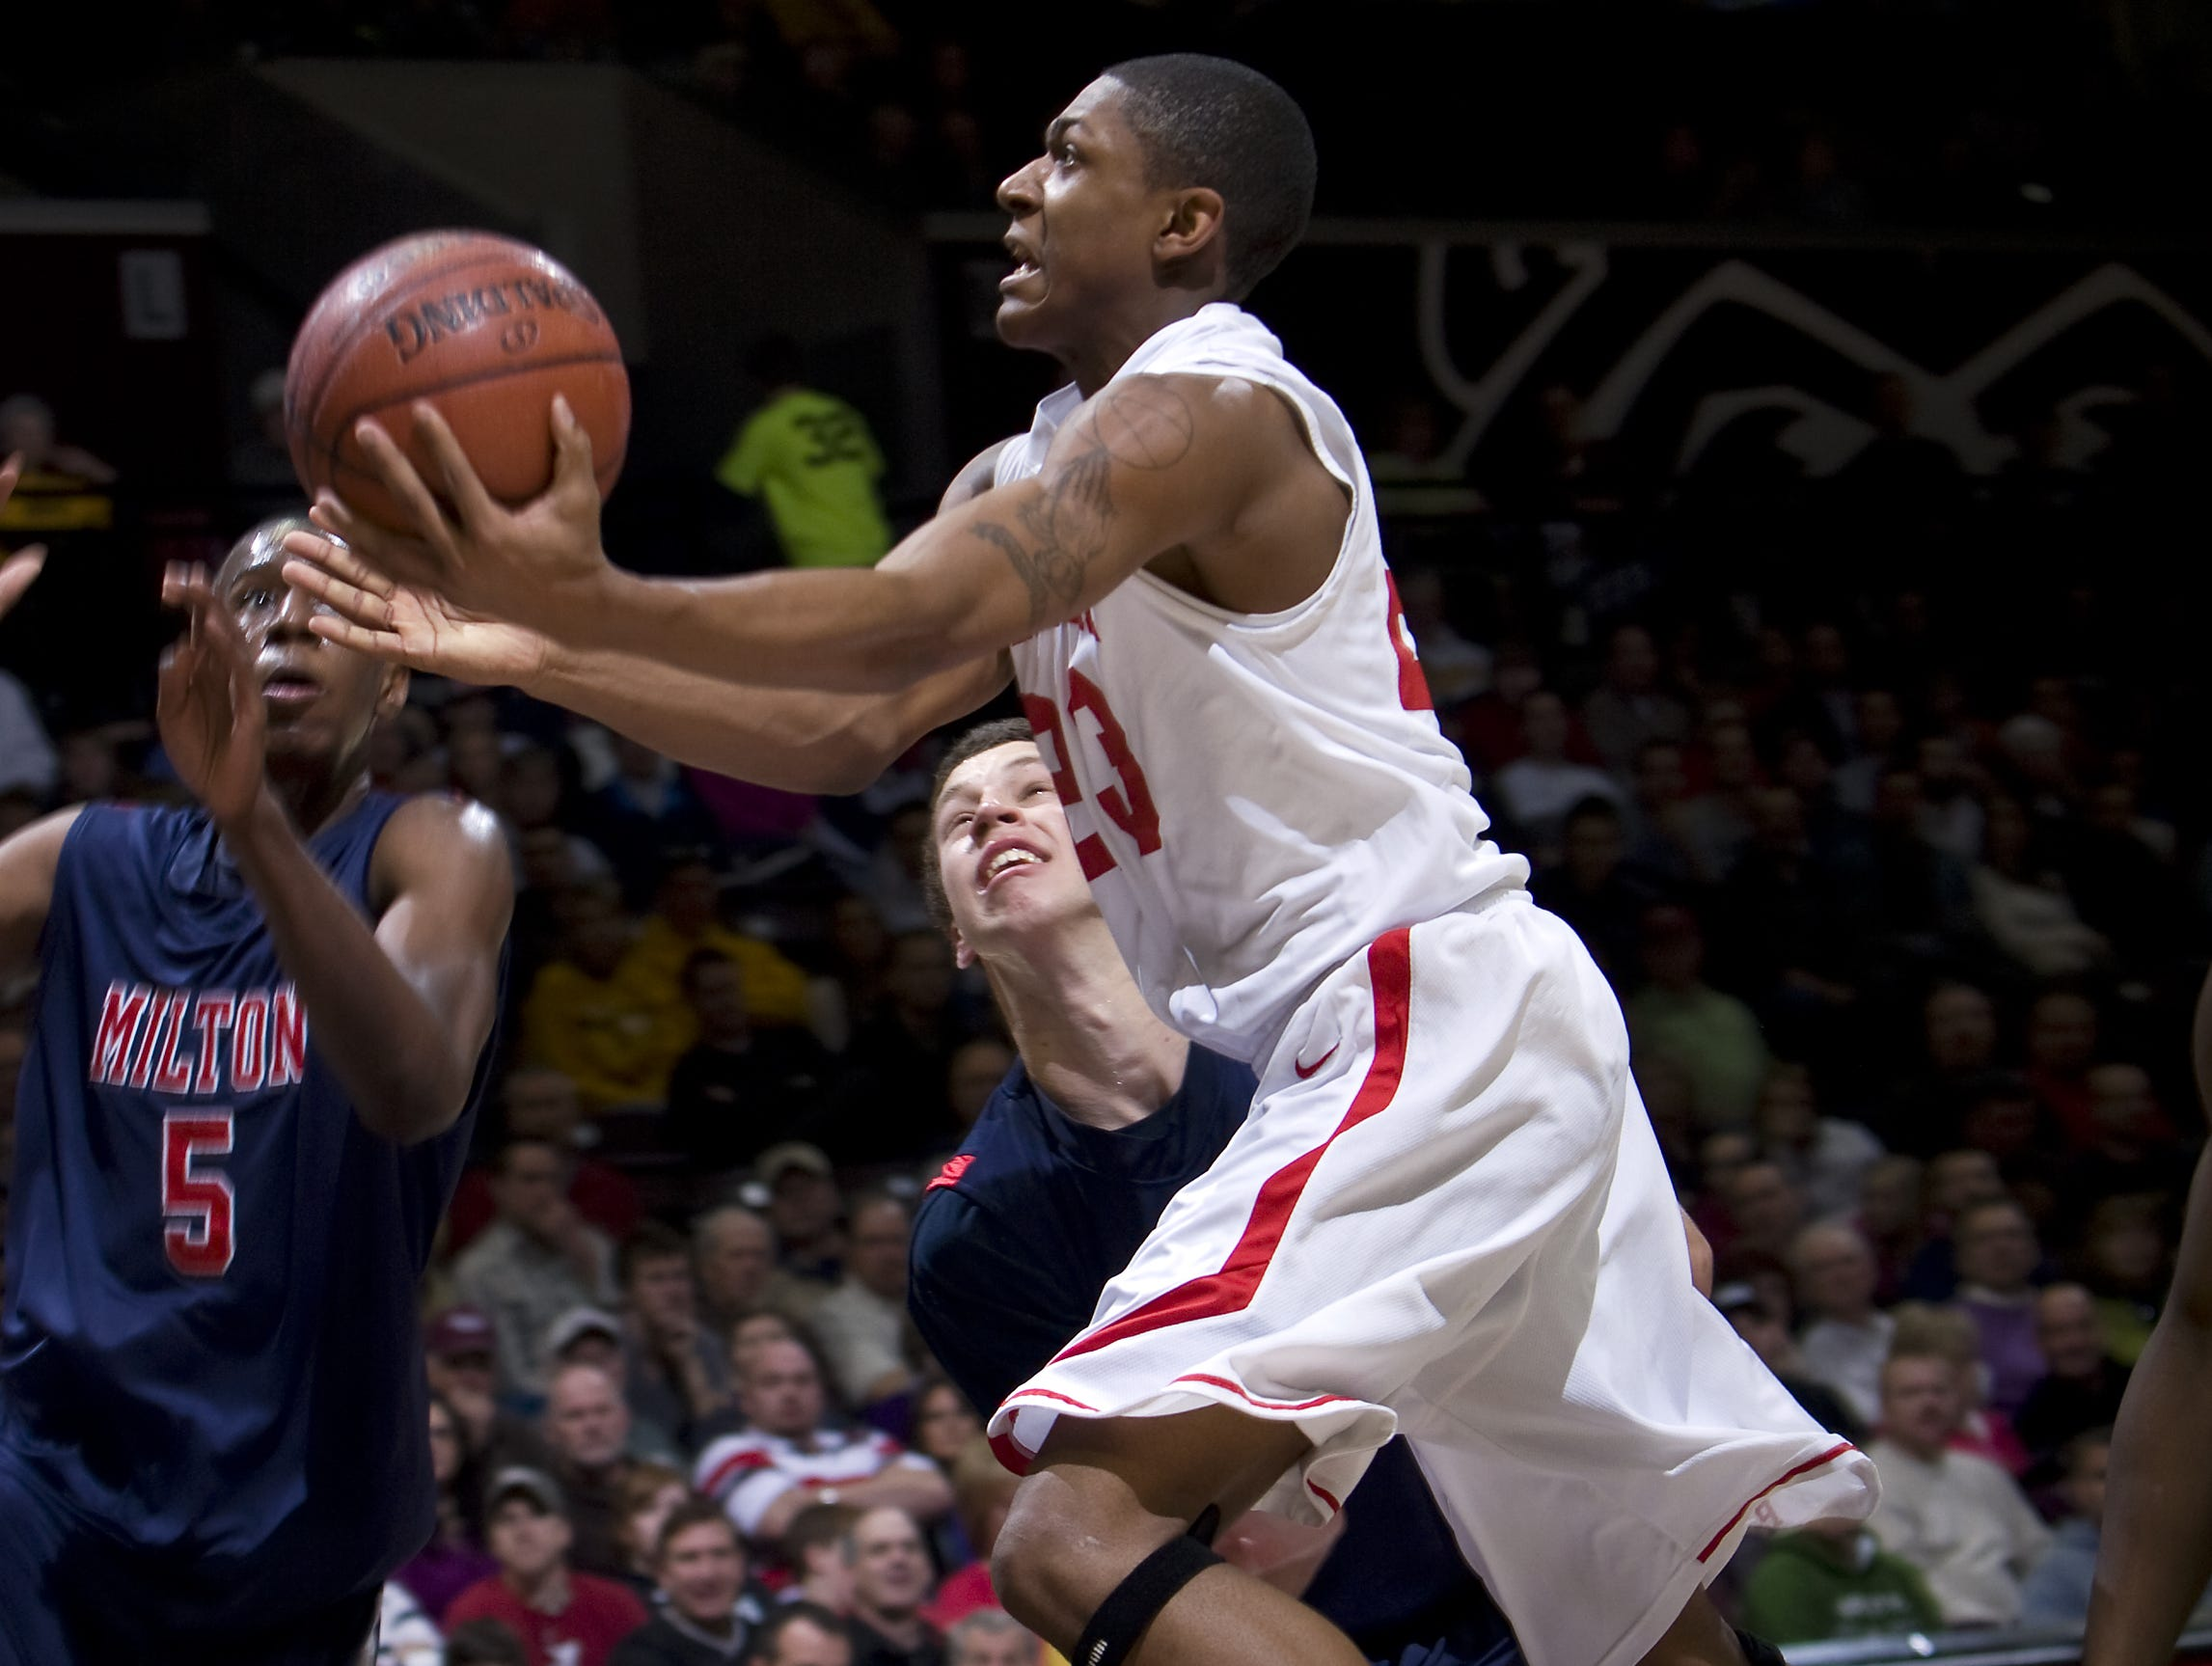 Chaminade College Prep guard Bradley Beal, top center, attempts a shot over the defense of Milton High School teammates Shannon Scott, left, and Evan Nolte, bottom center, in the opening round of the 2010 Bass Pro Tournament of Champions.